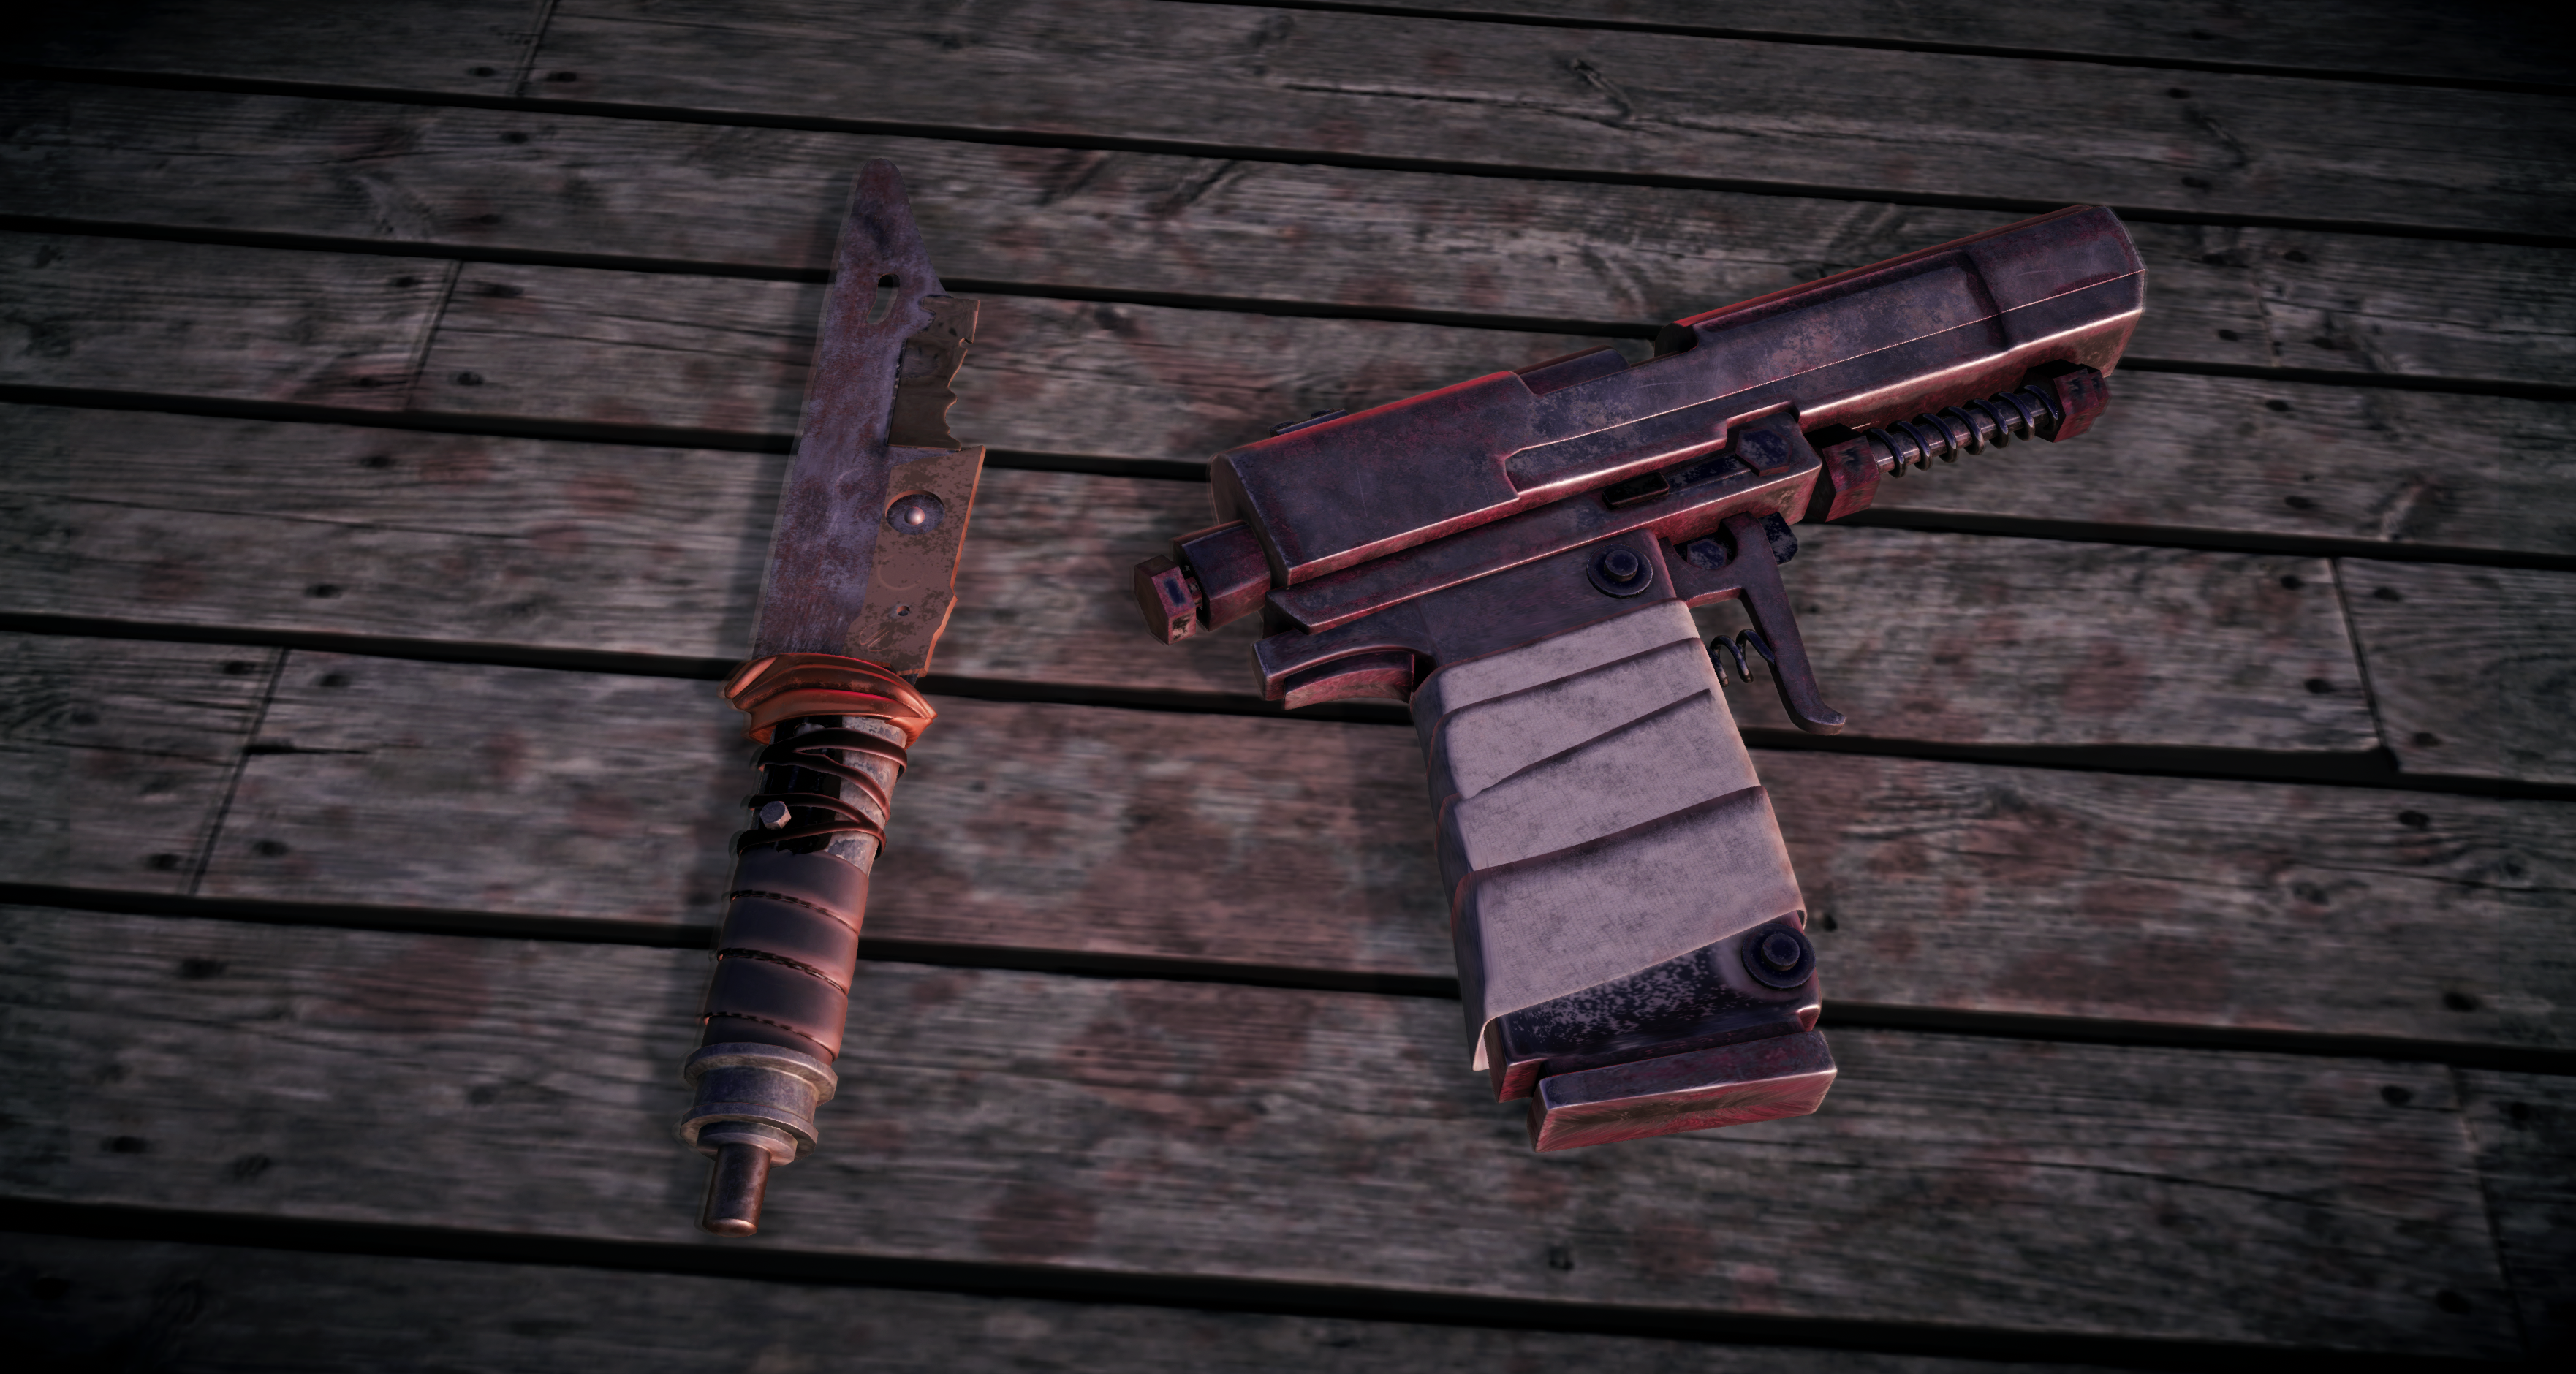 Apocalyptic knife and Gun